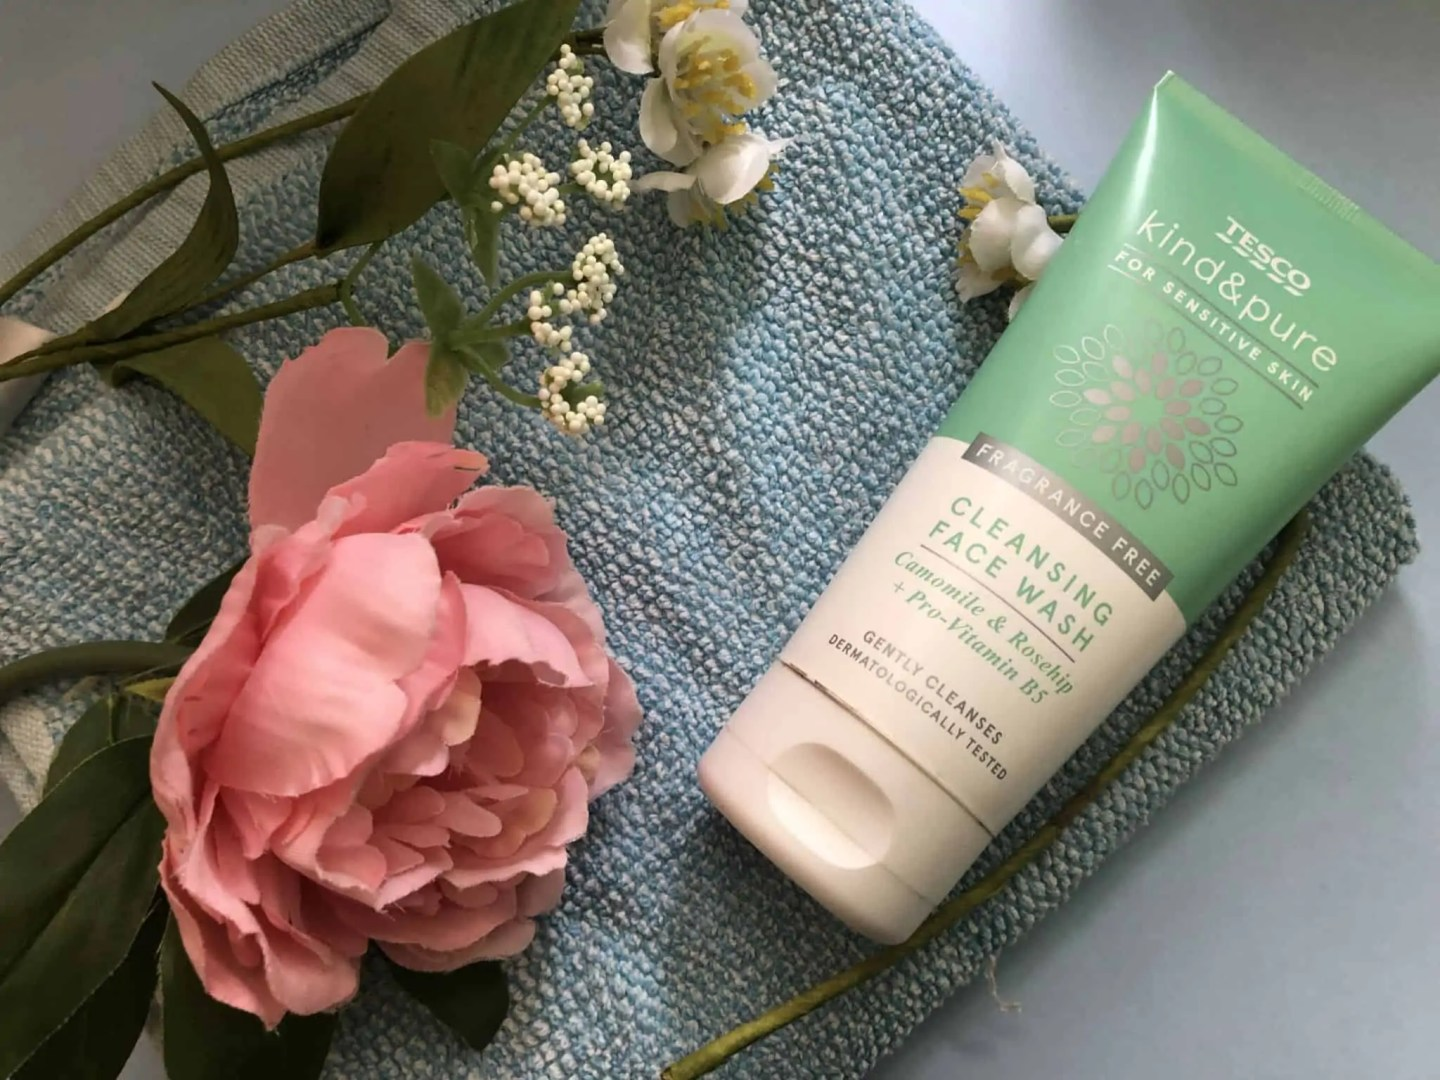 Discover a skincare routine that will keep your skin healthy and glowing tesco kind and pure cleansing face wash